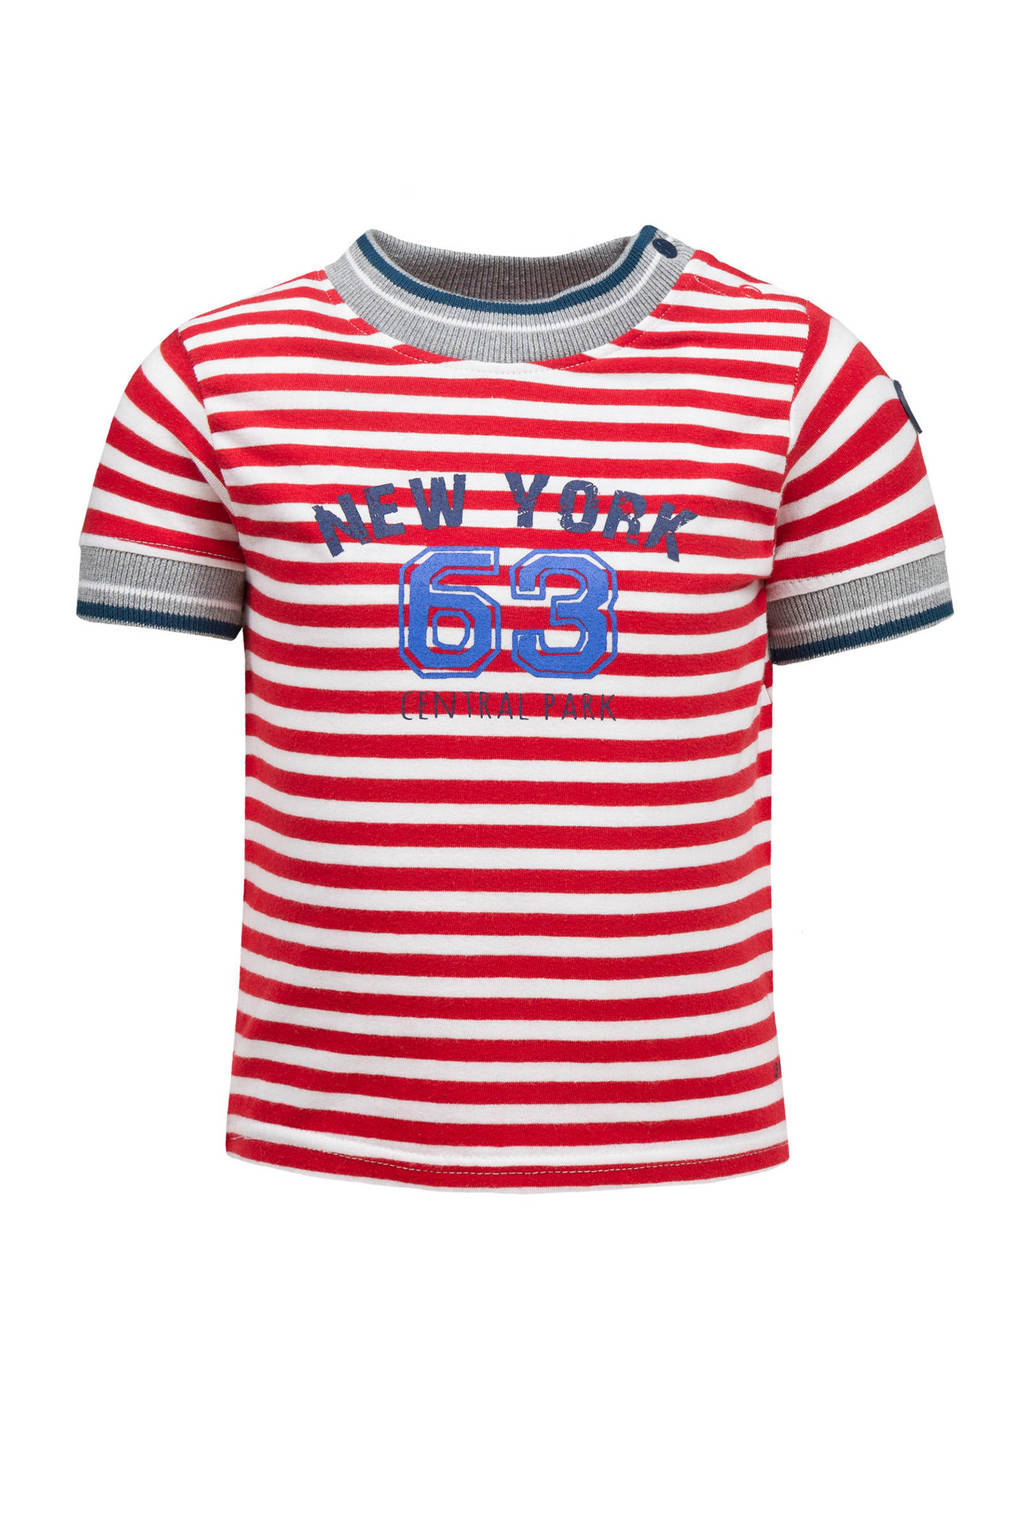 lief! gestreept T-shirt rood/wit, Rood/wit